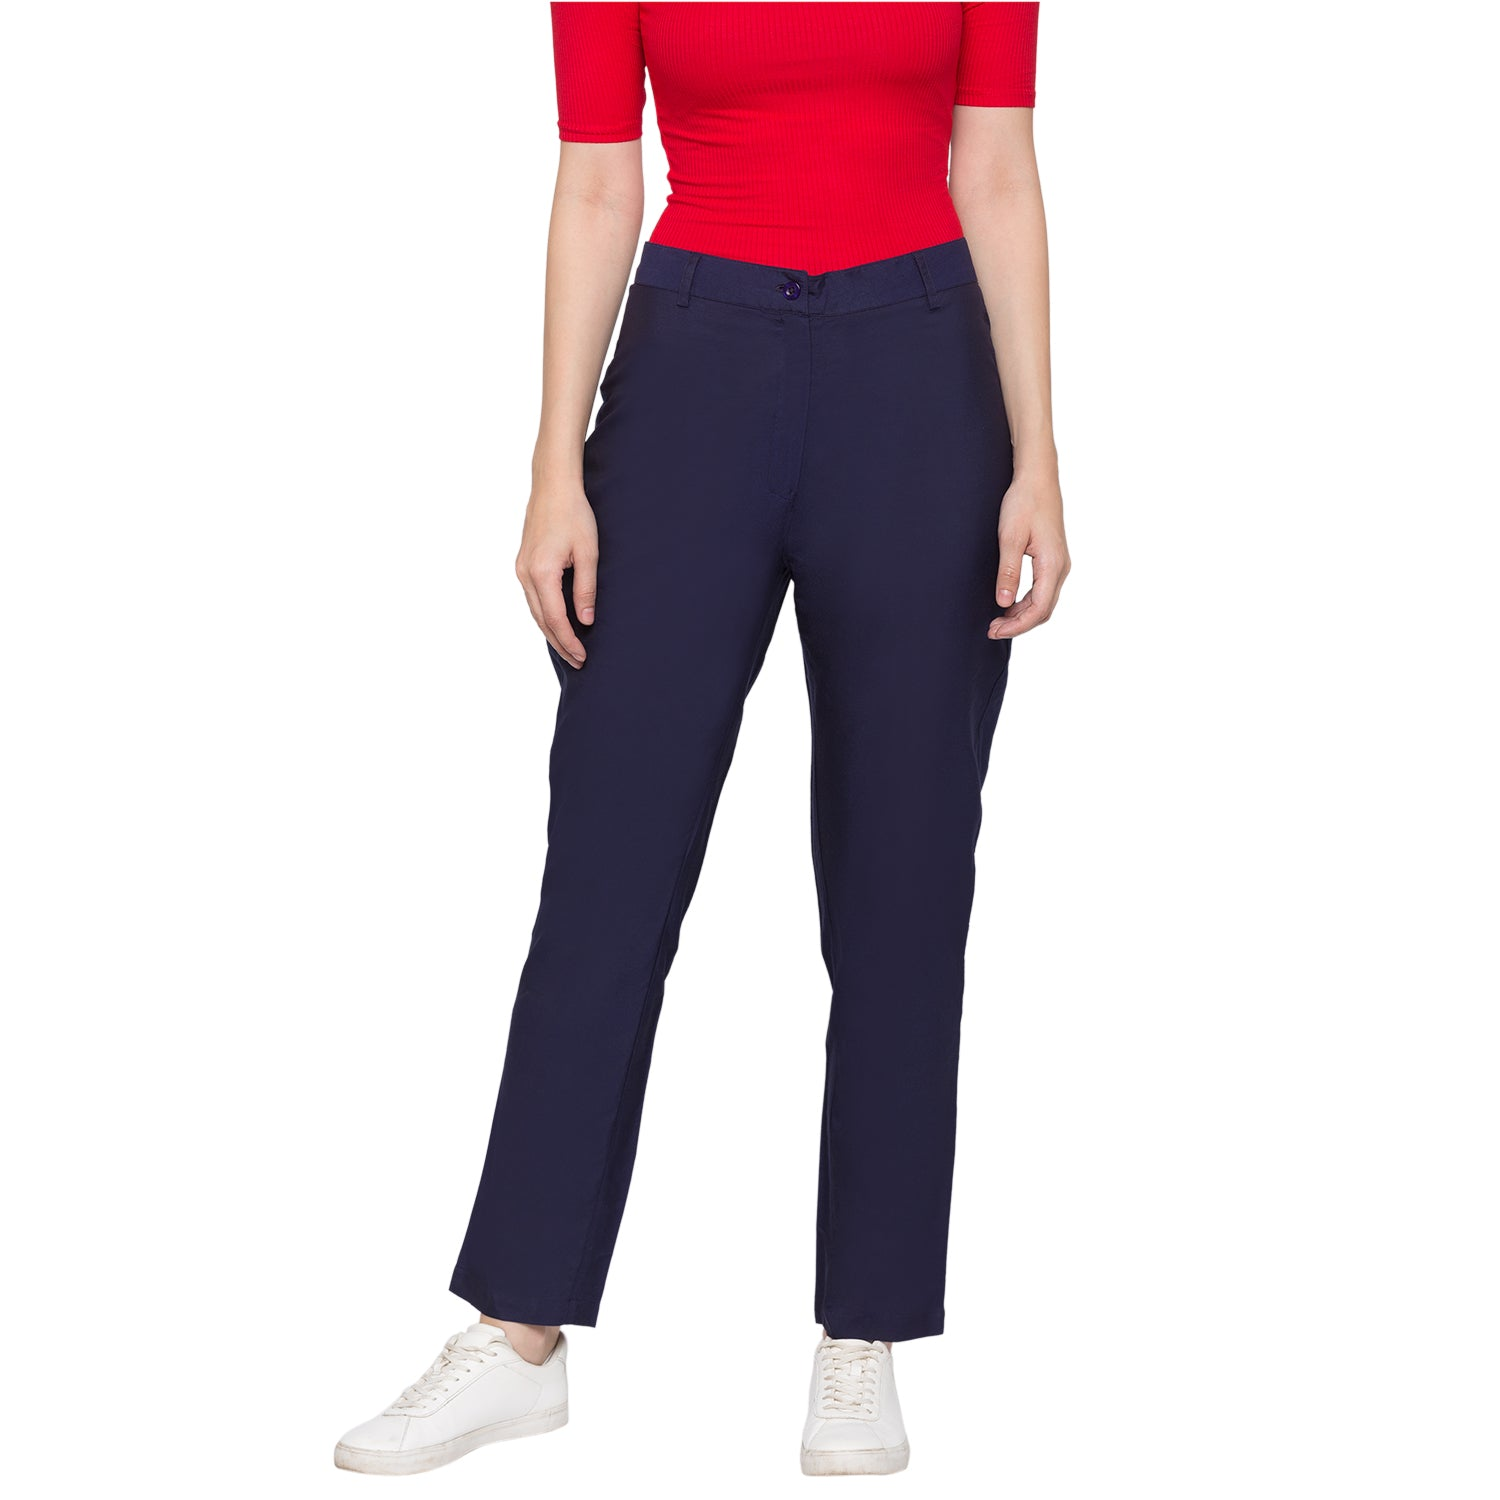 GLOBUS Navy Blue Solid Trousers-1